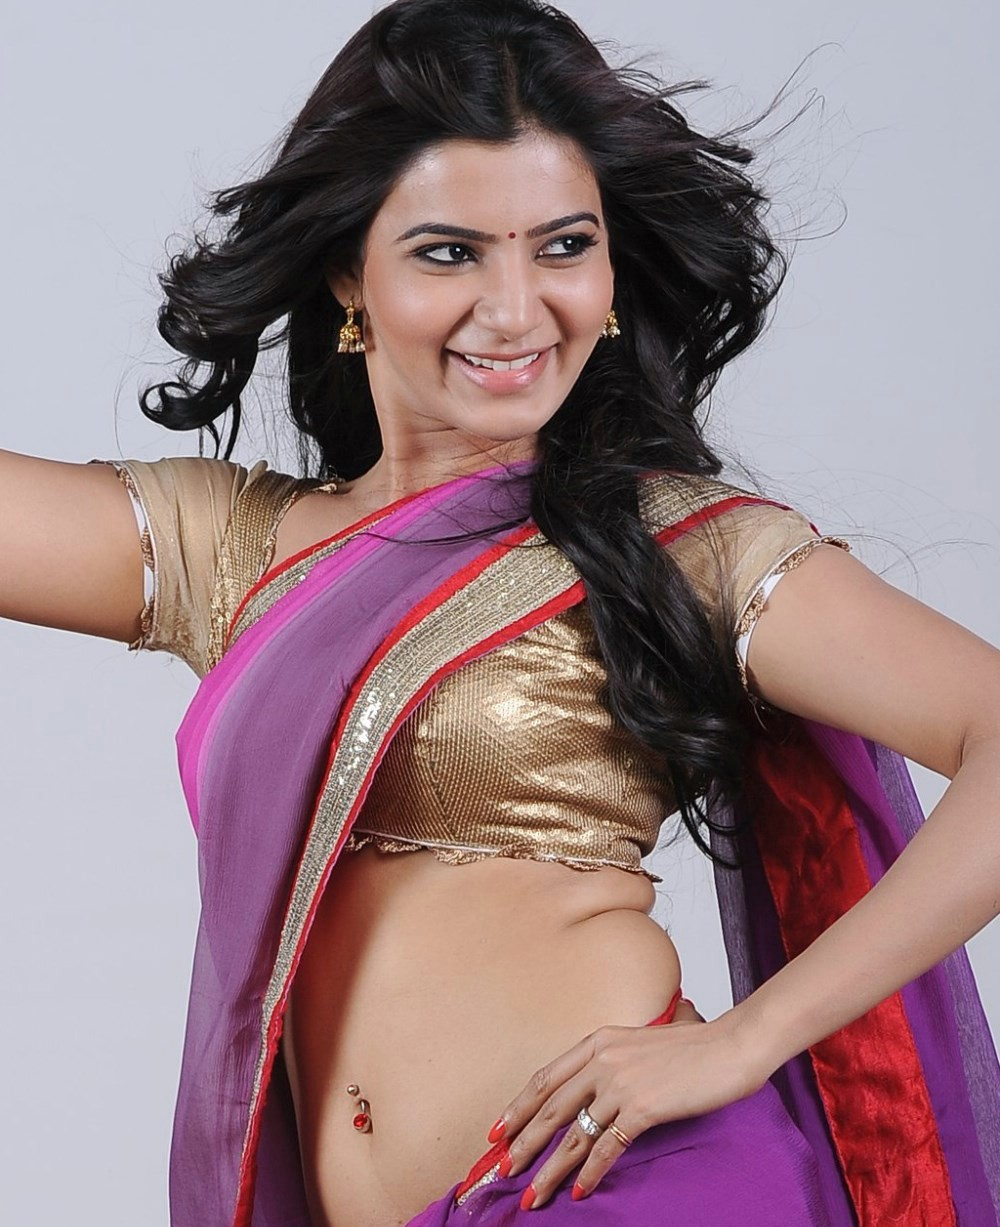 Hot and sexy images of samantha